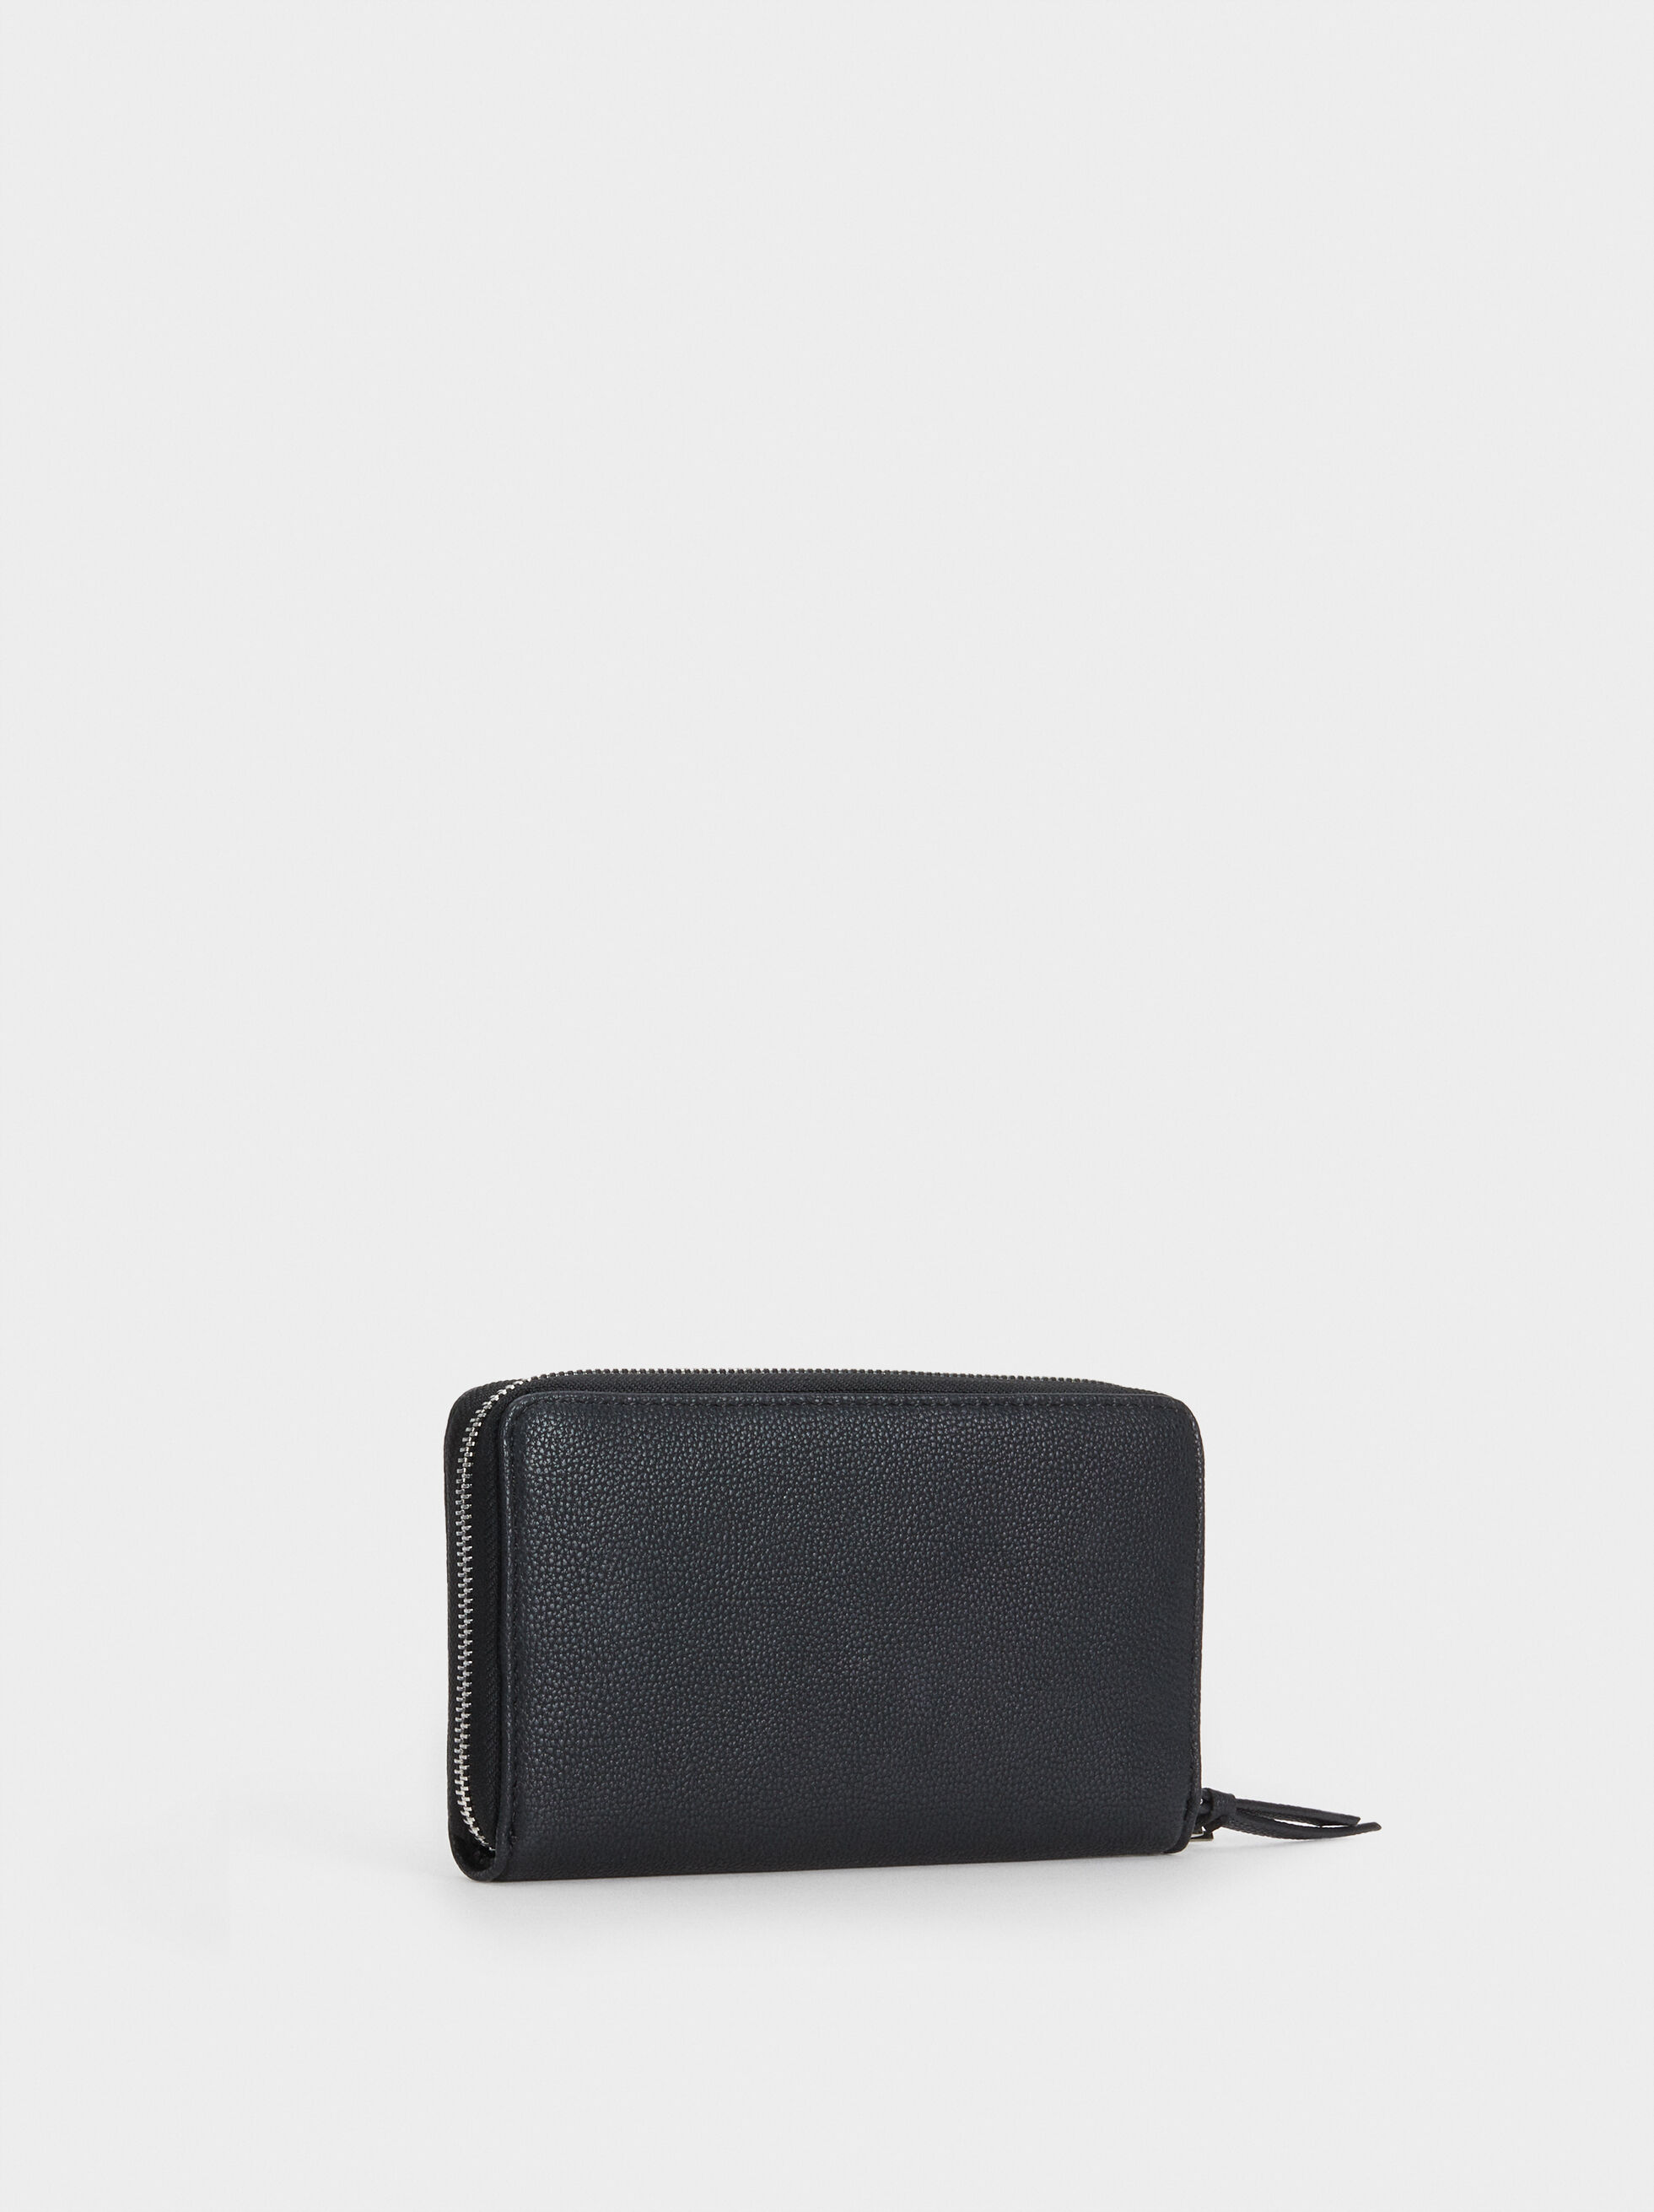 Thunder Wallet, Black, hi-res